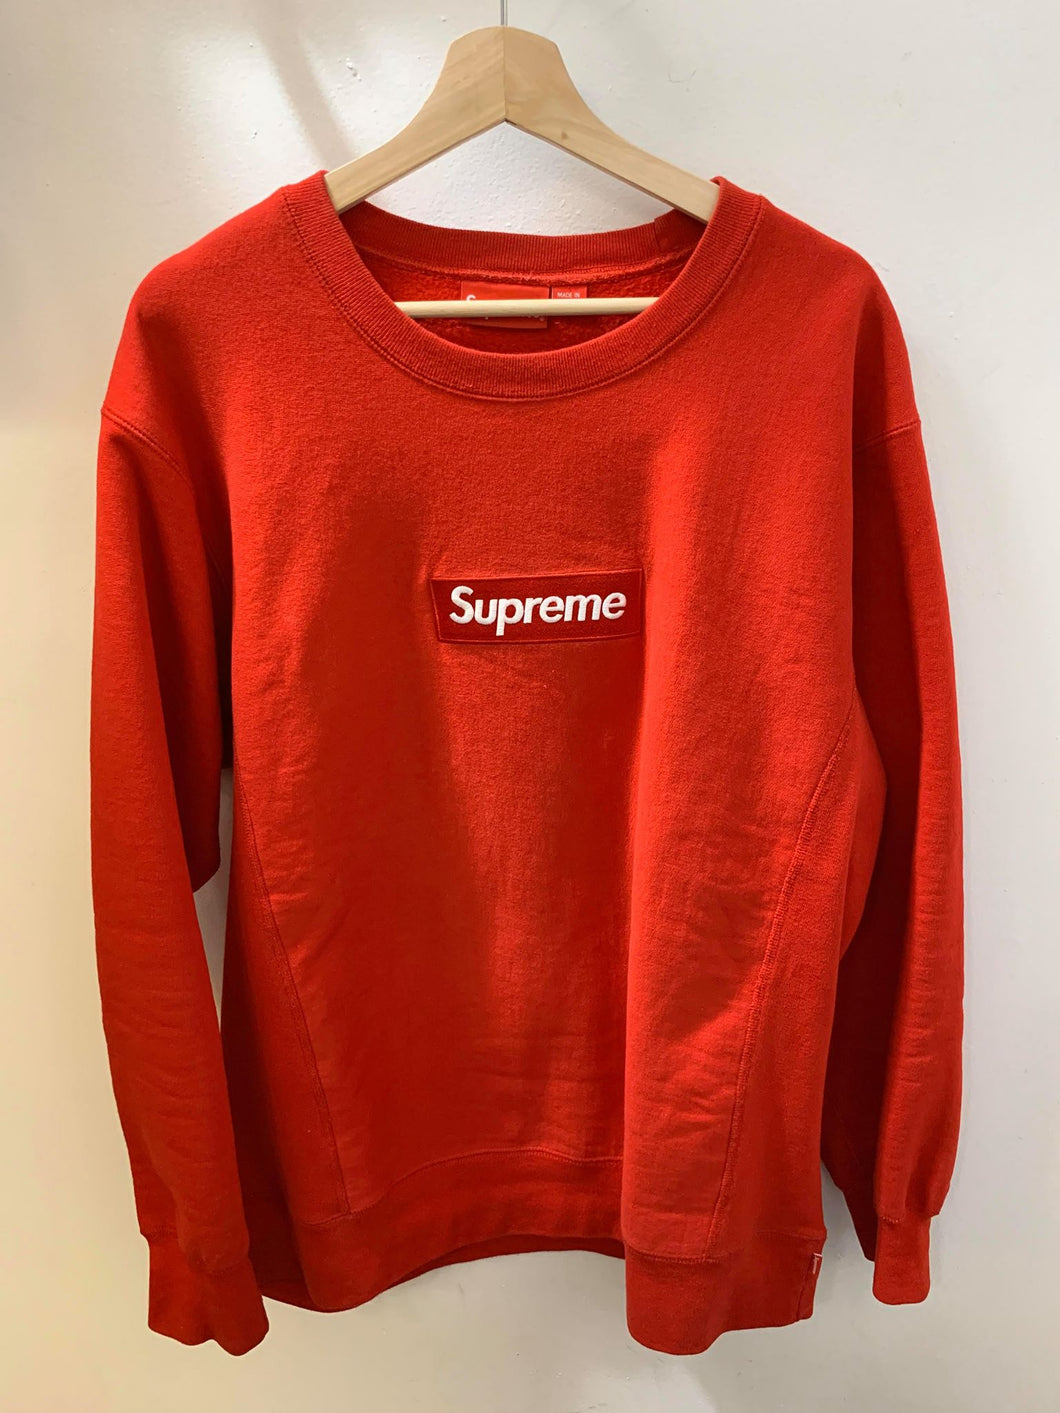 Supreme FW15 Red on Red Crewneck